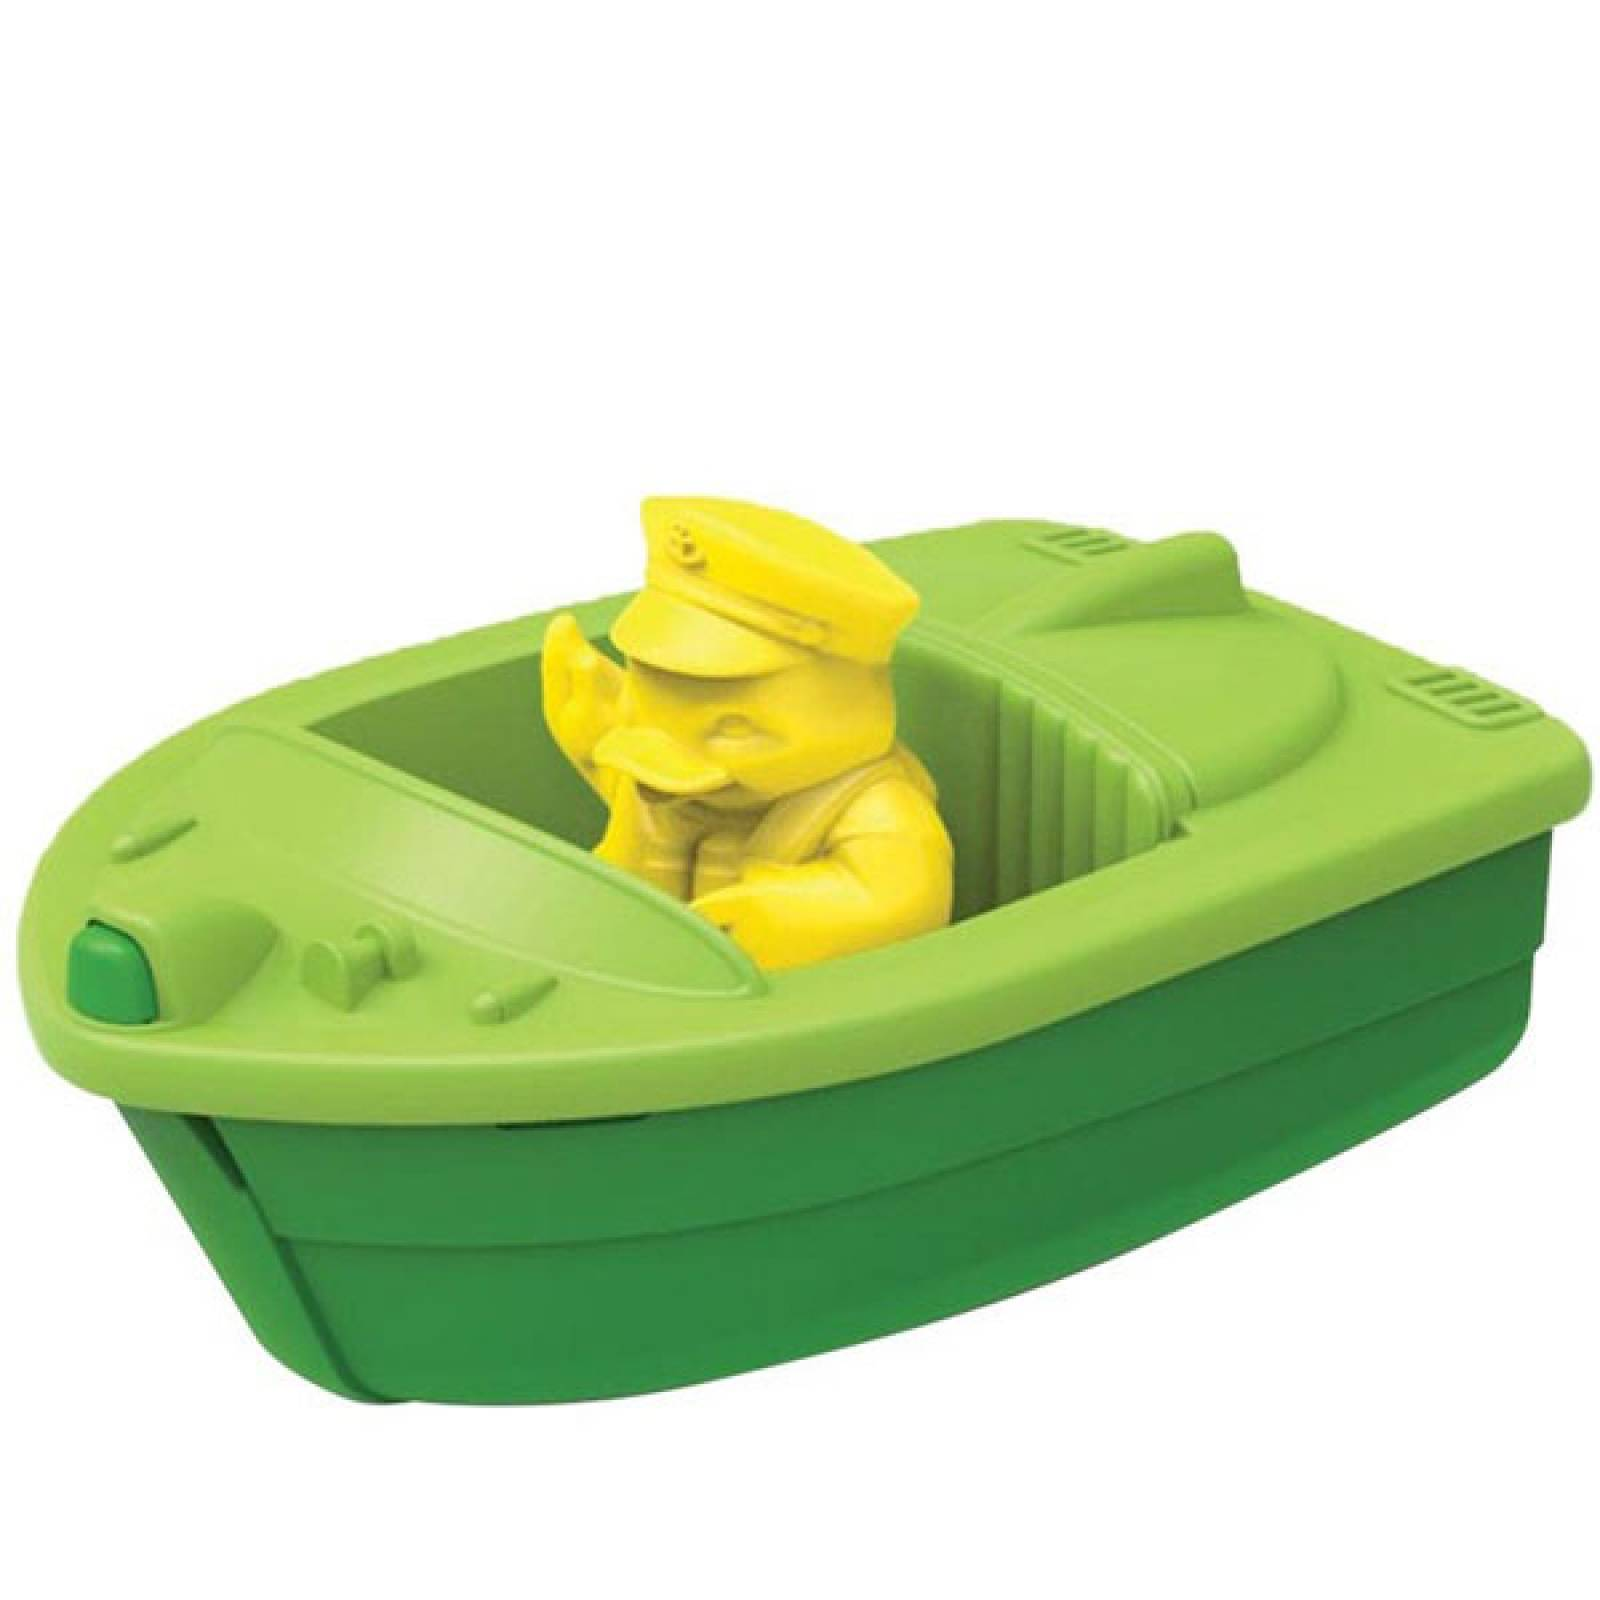 Green Launch Boat By Green Toys - Recycled Plastic 2+